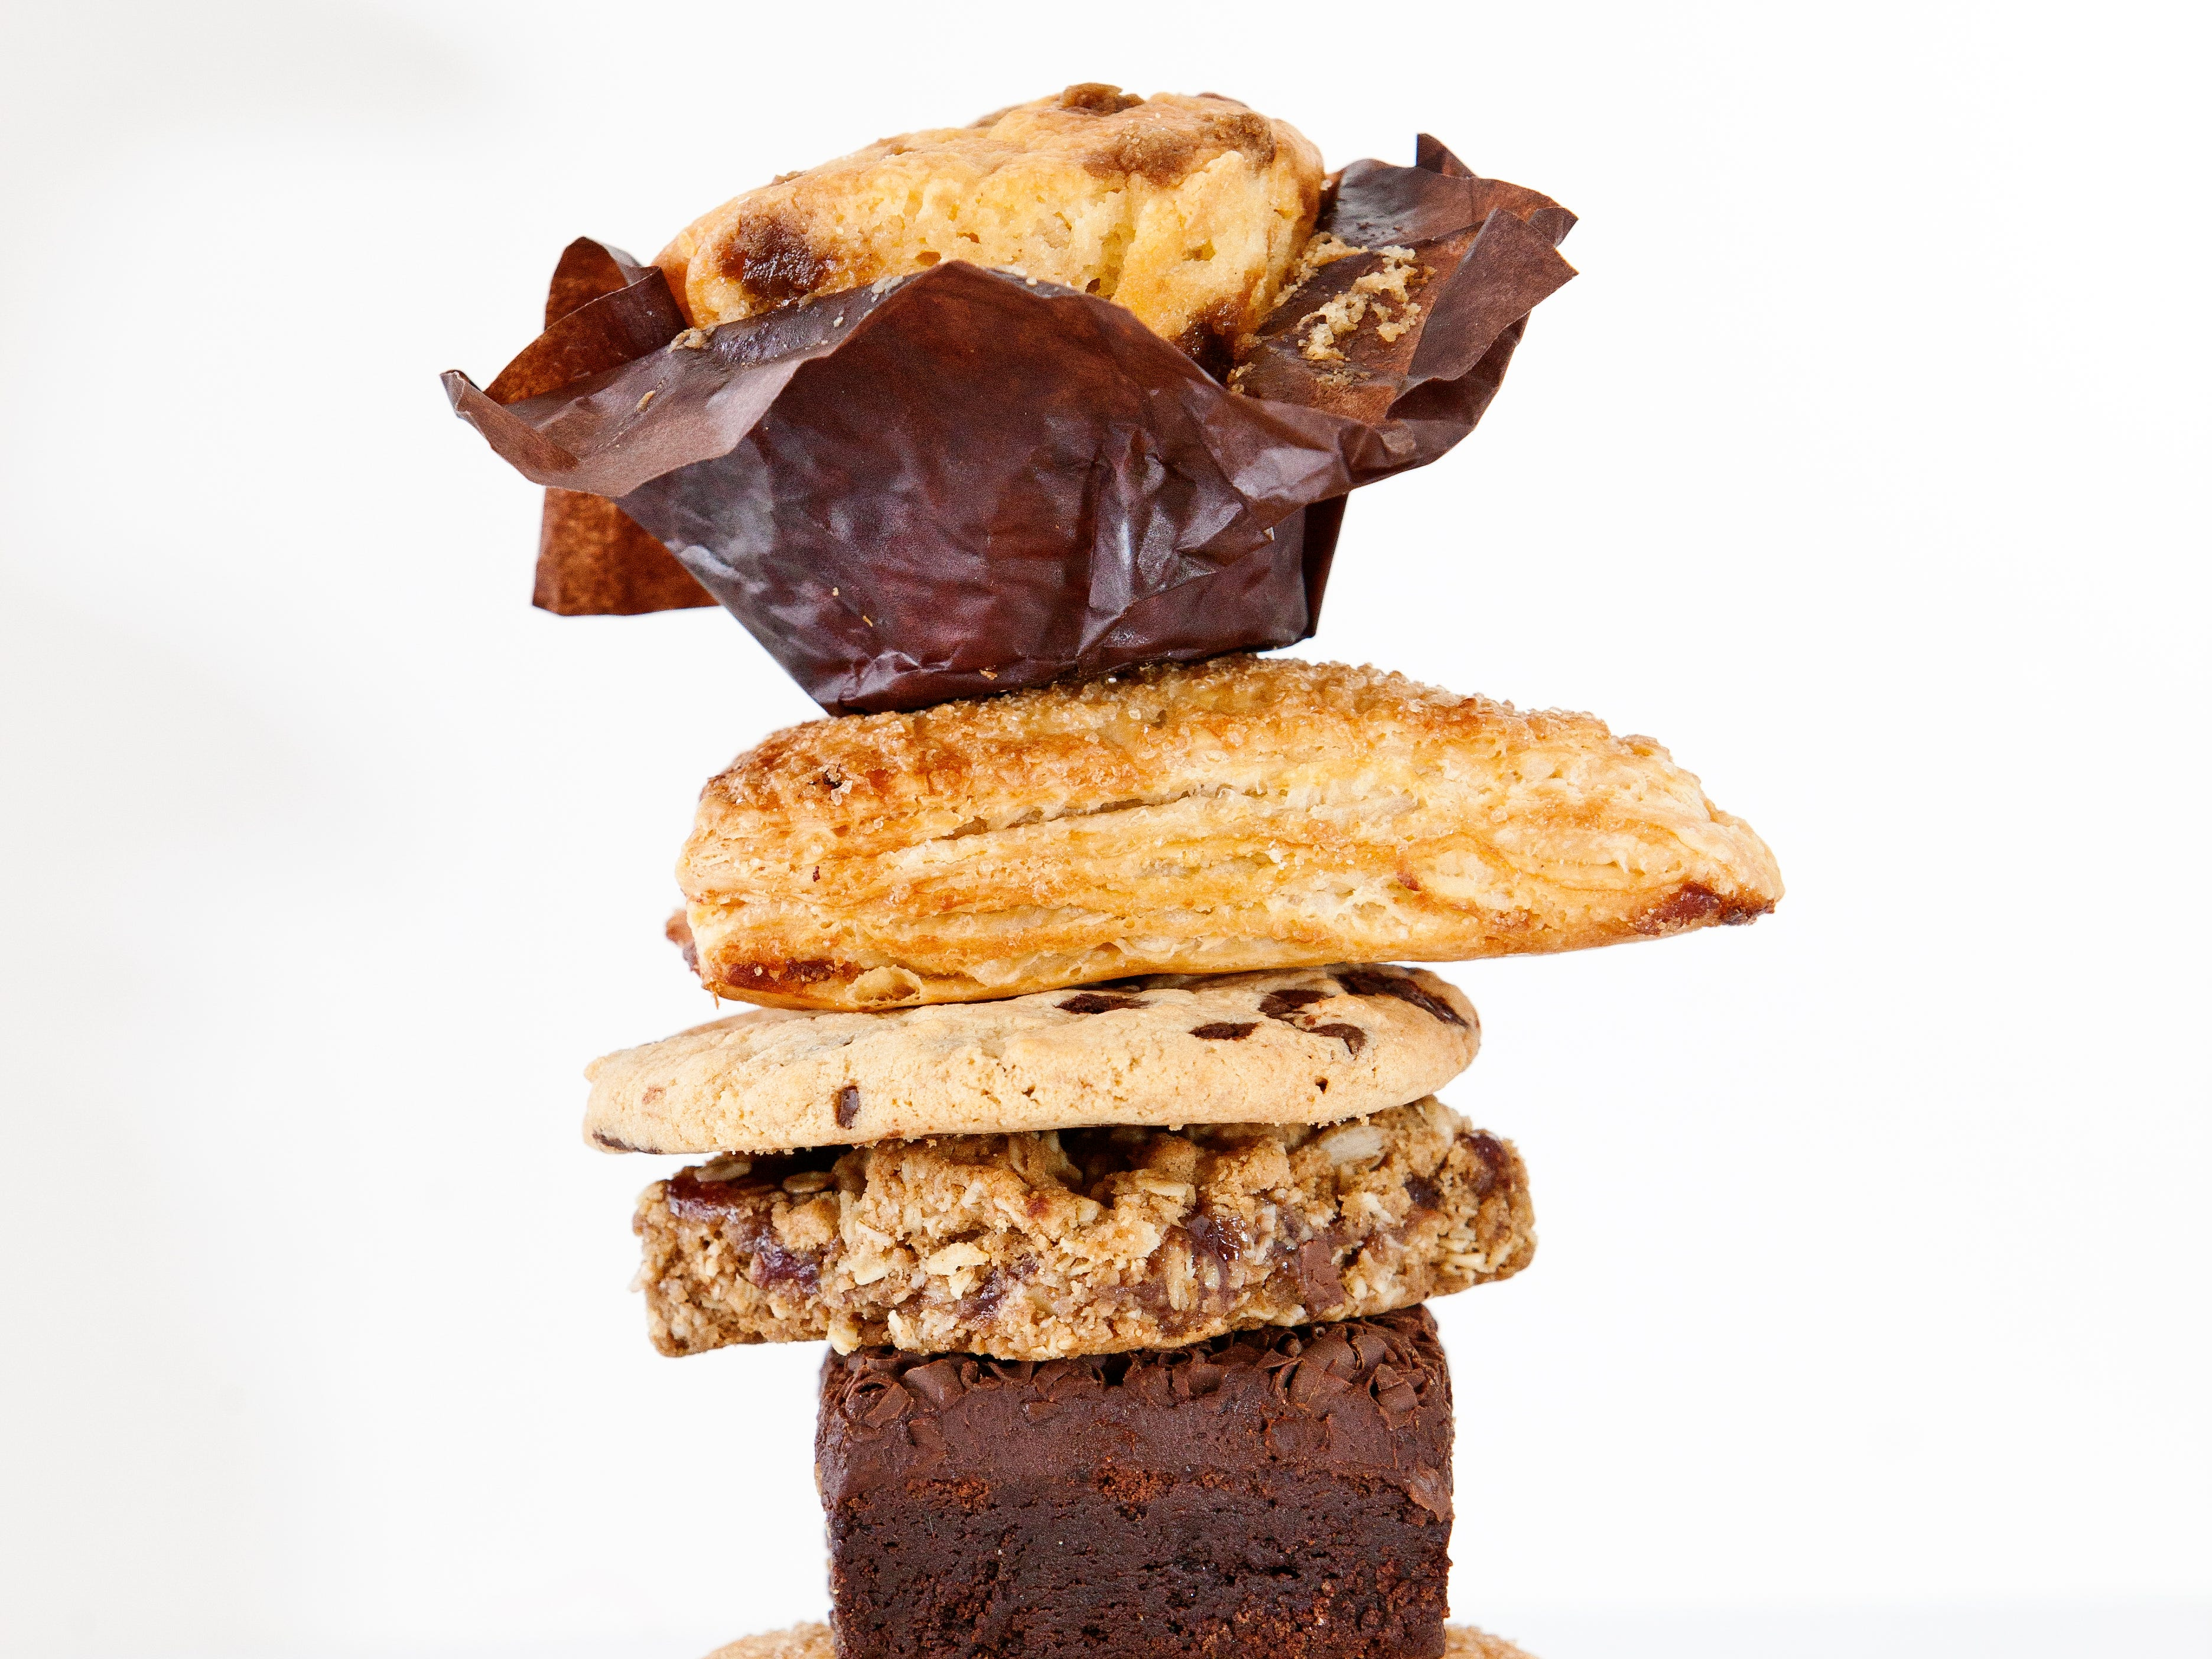 WildFlour Pastry's delectable treats tempt Charlestonians away from their diets on a daily basis.